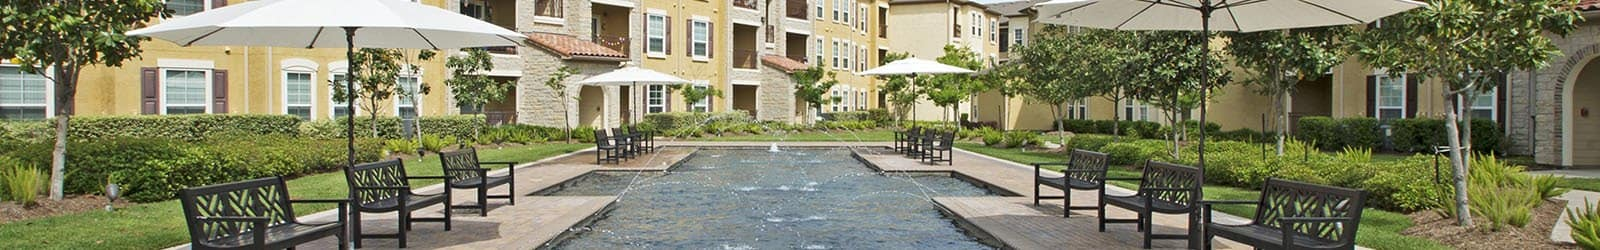 1, 2 & 3 bedrooms offered at apartments in League City